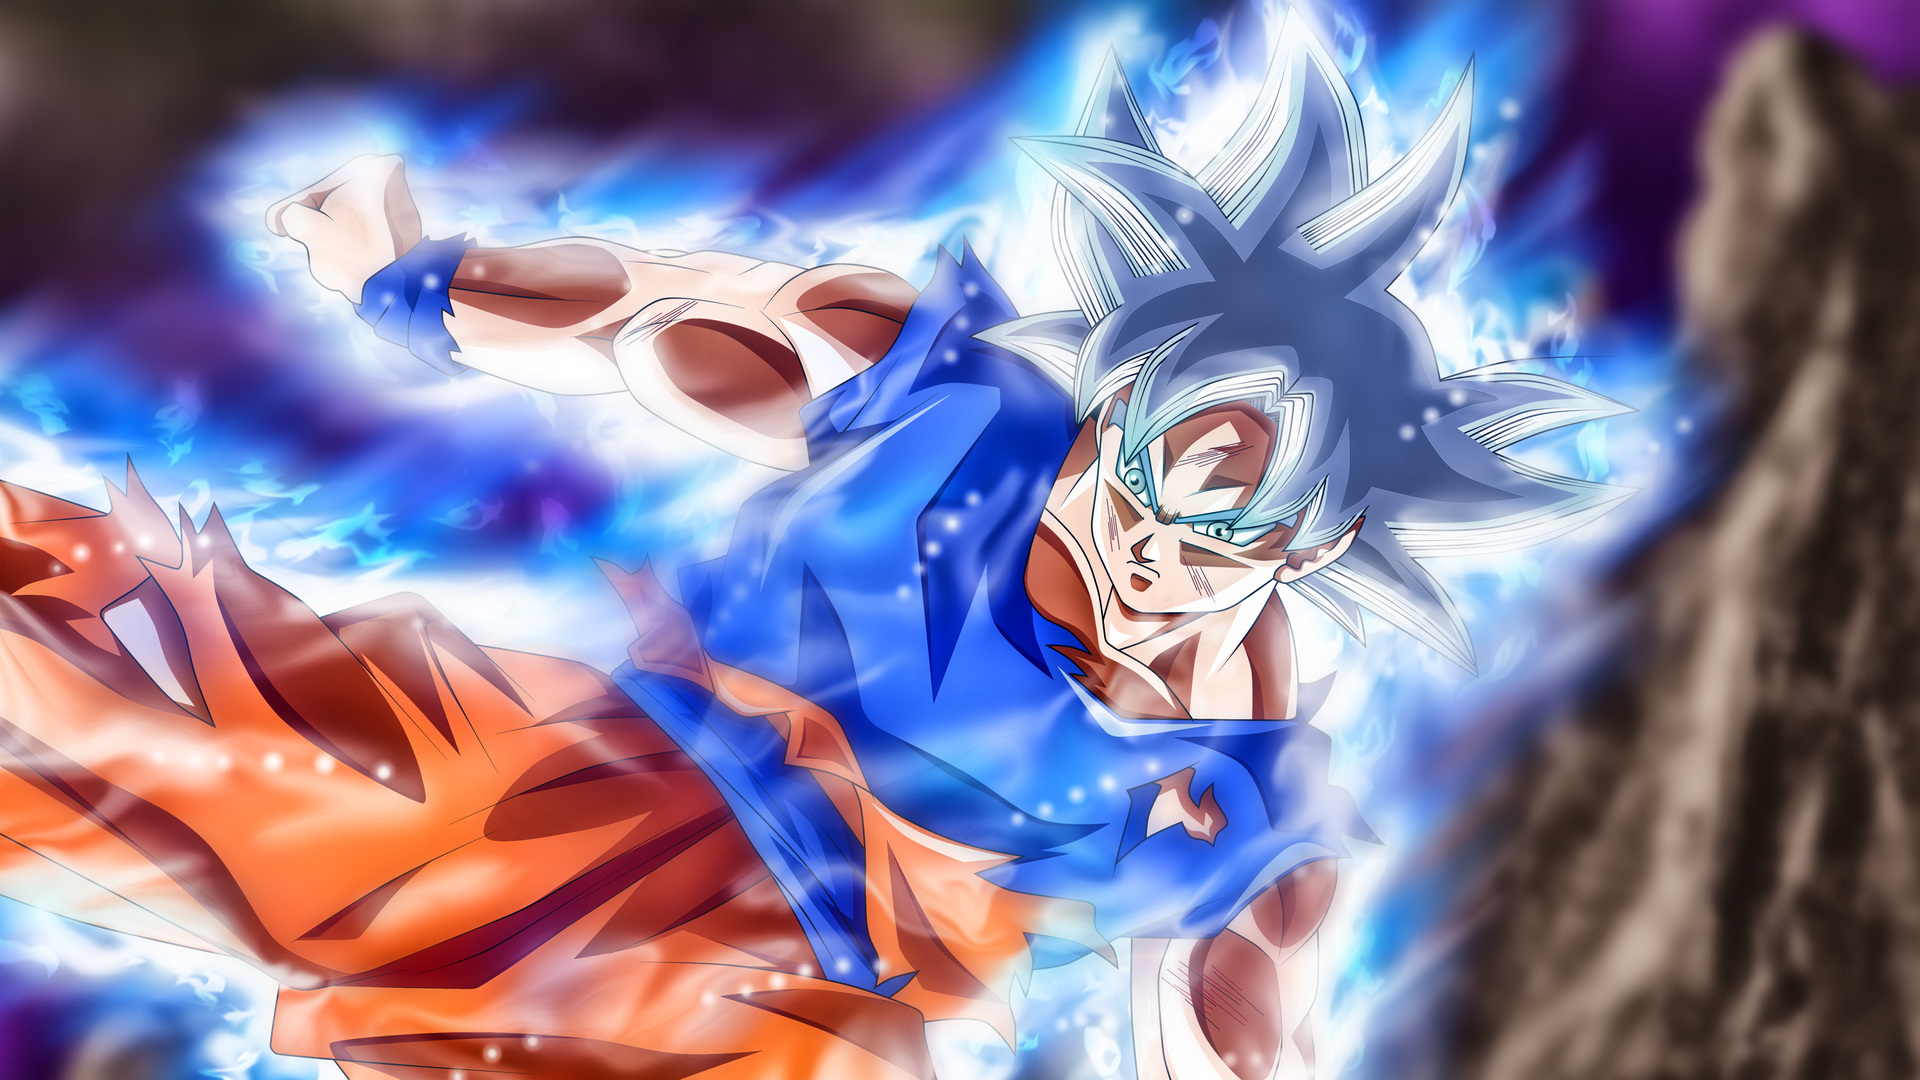 Goku Ultra Instinct Wallpaper 1080p: 1920x1080 Goku Jiren Masterd Ultra Instinct Laptop Full HD